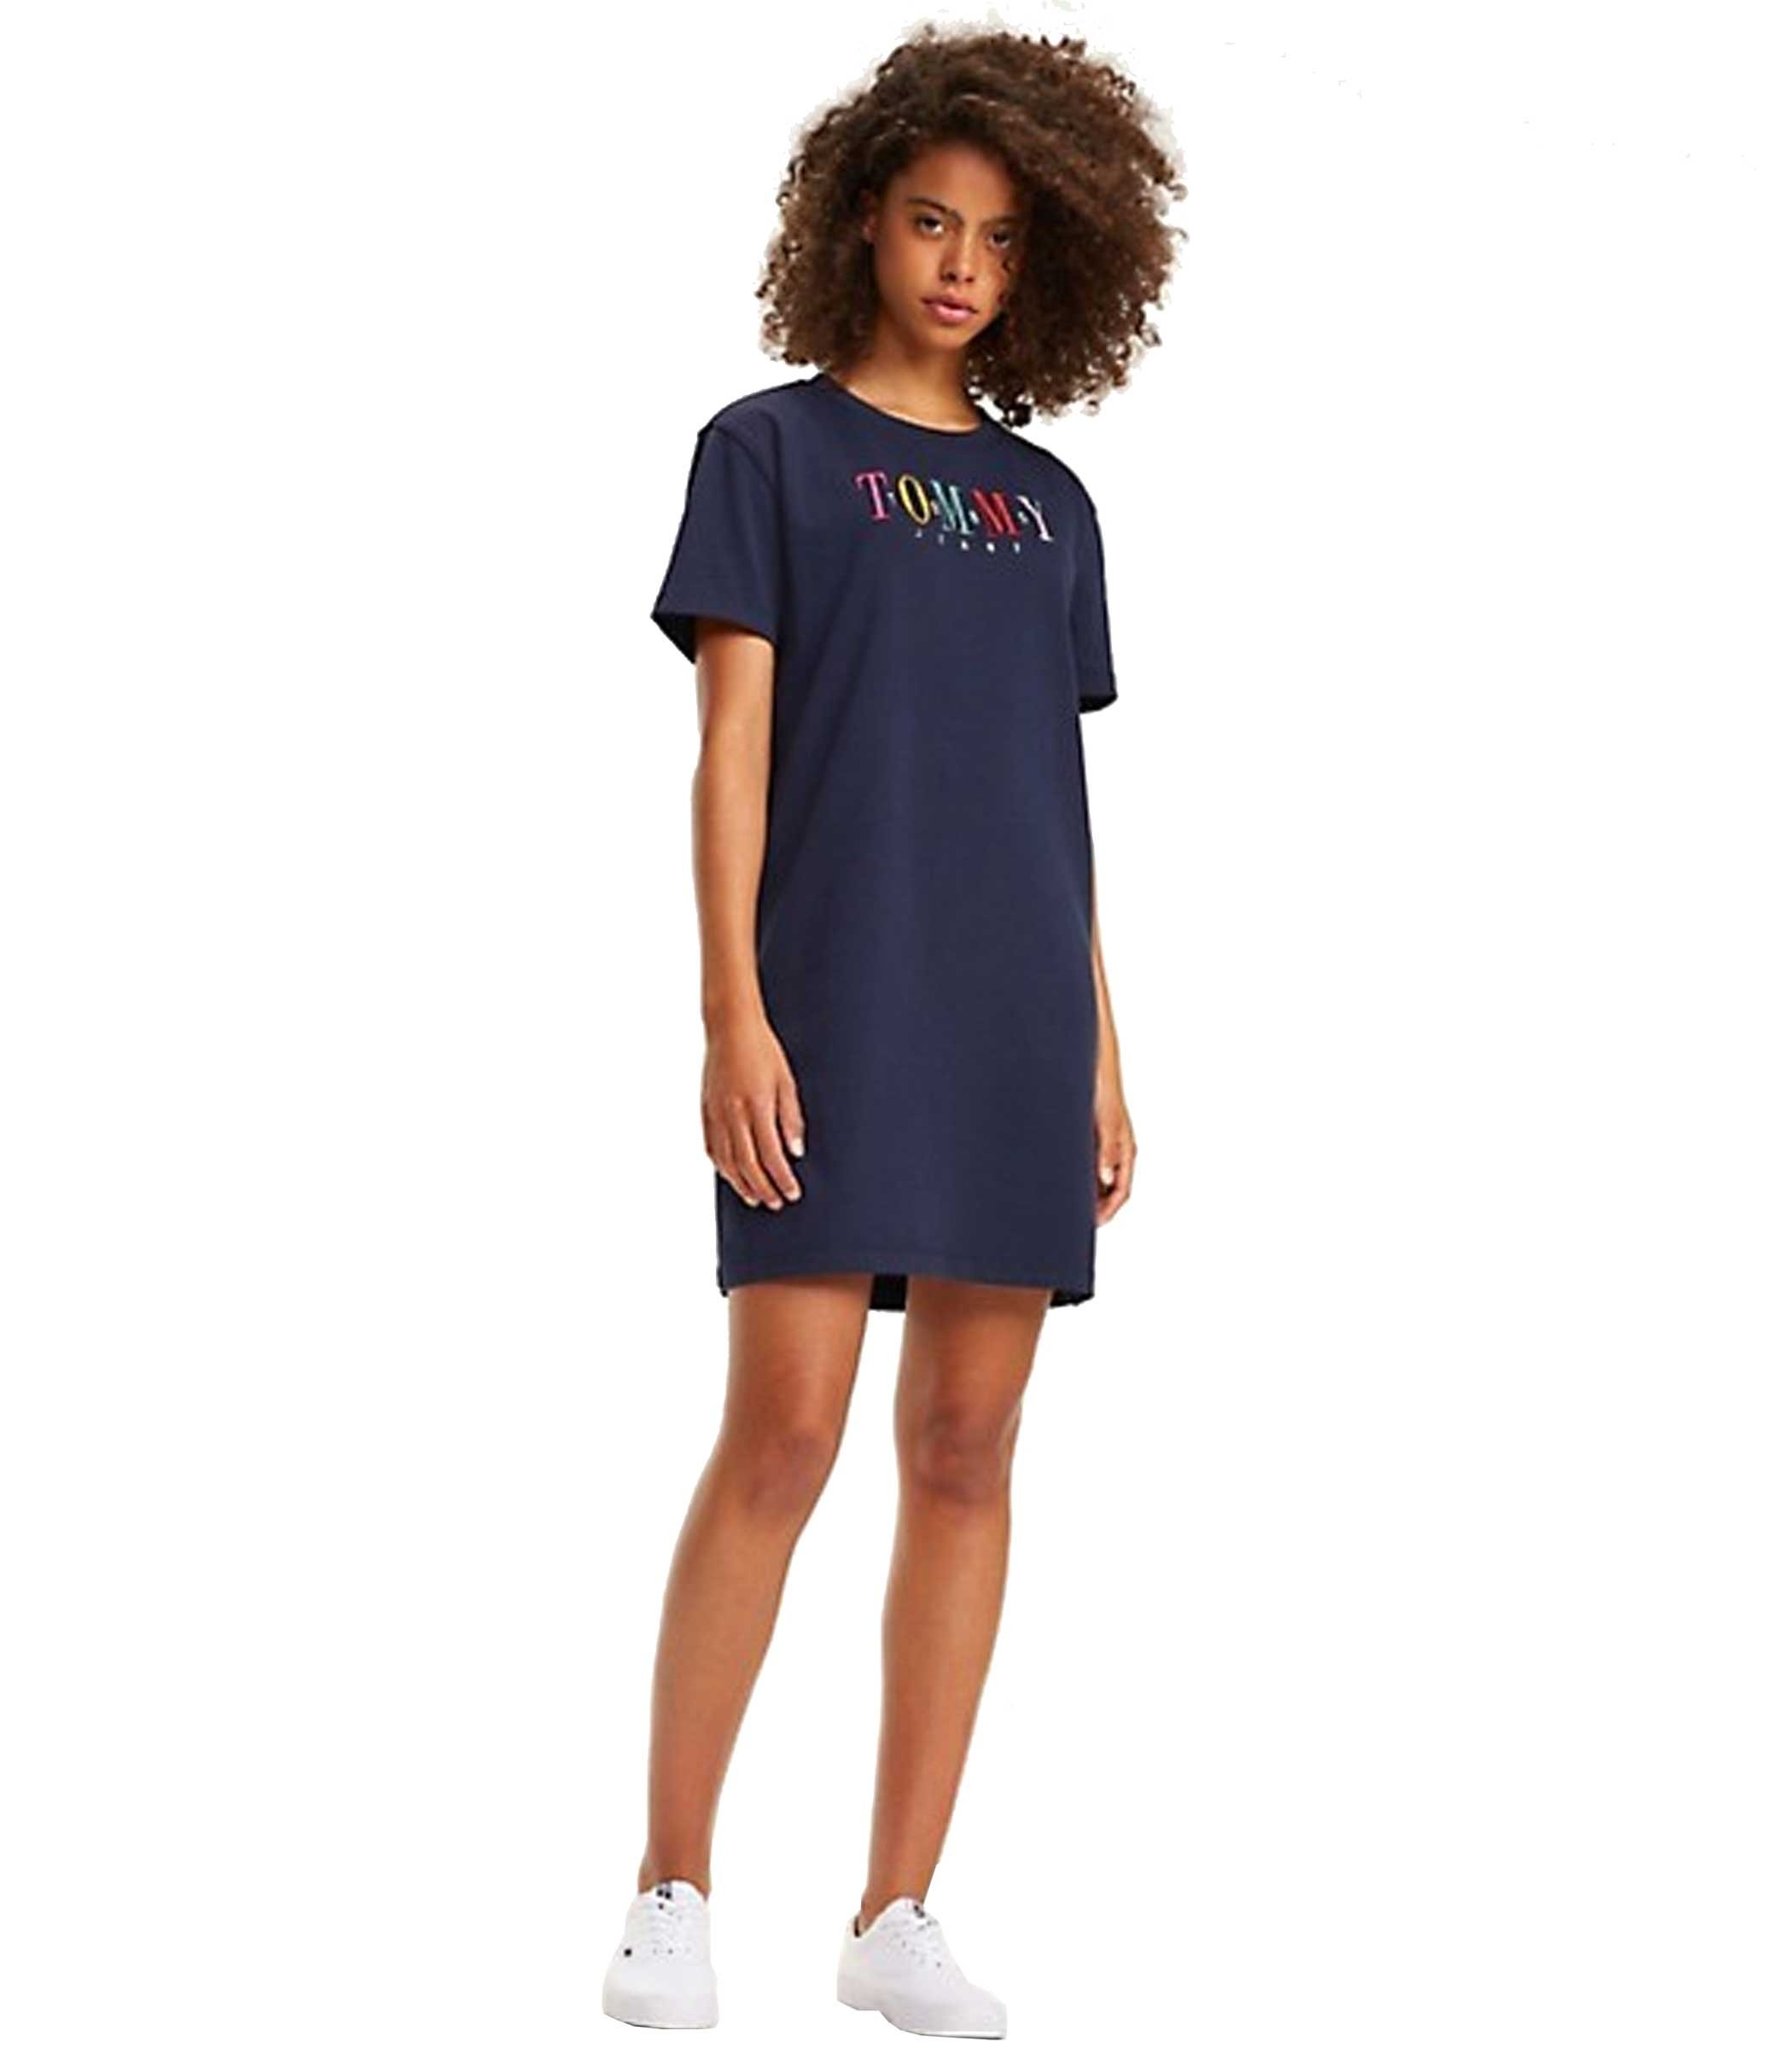 finest selection 08abf 9a2ee Abito t-shirt Tommy Jeans in puro cotone da donna rif ...